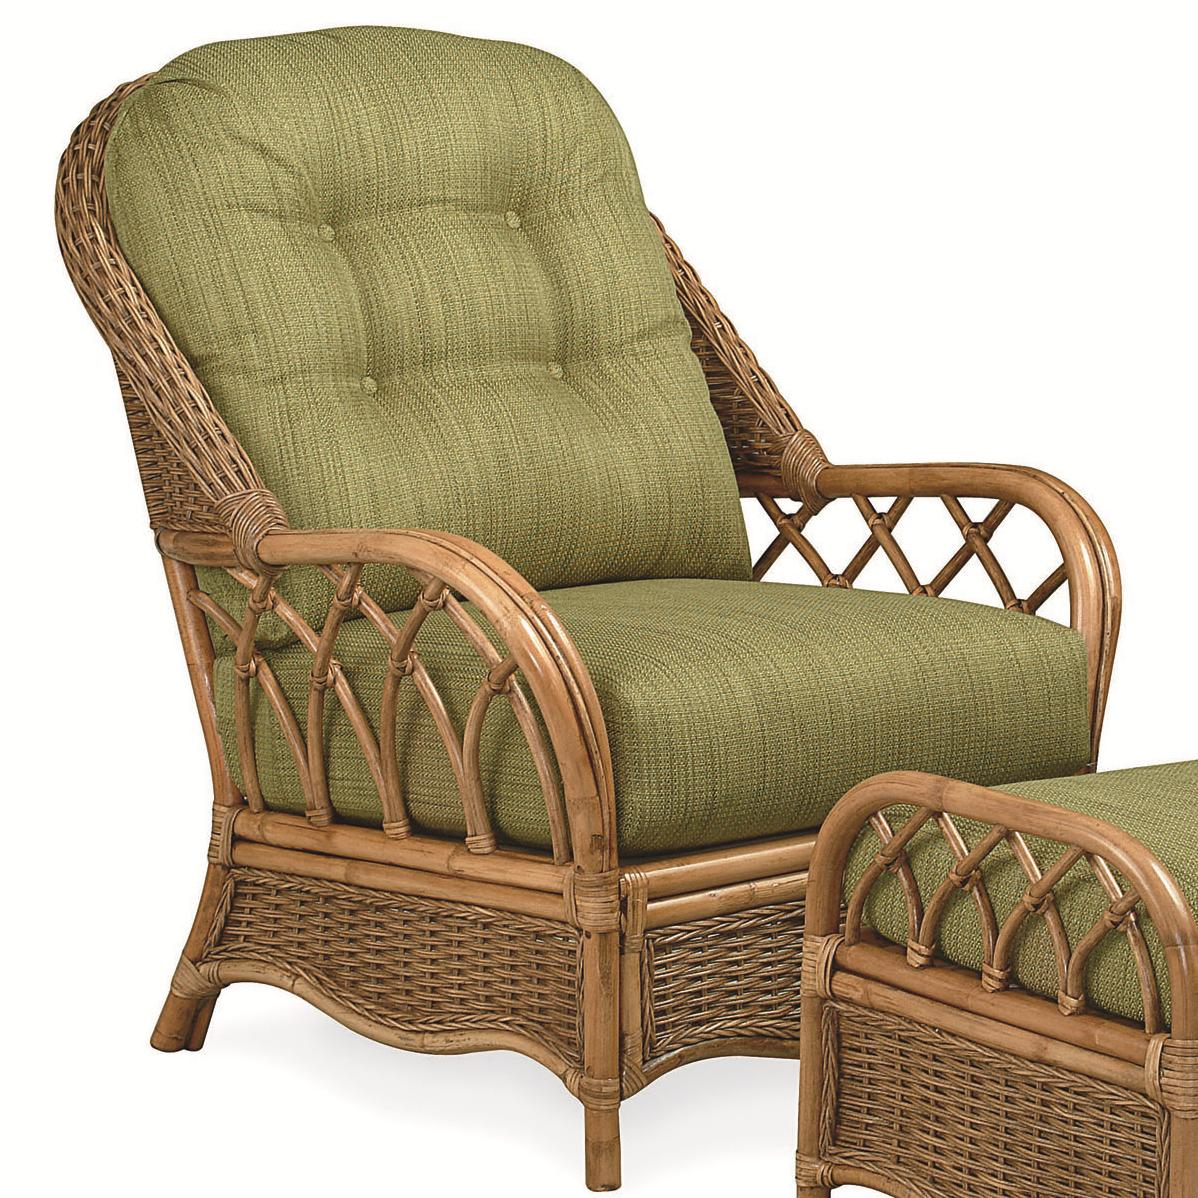 Everglade Rattan Chair by Braxton Culler at Alison Craig Home Furnishings